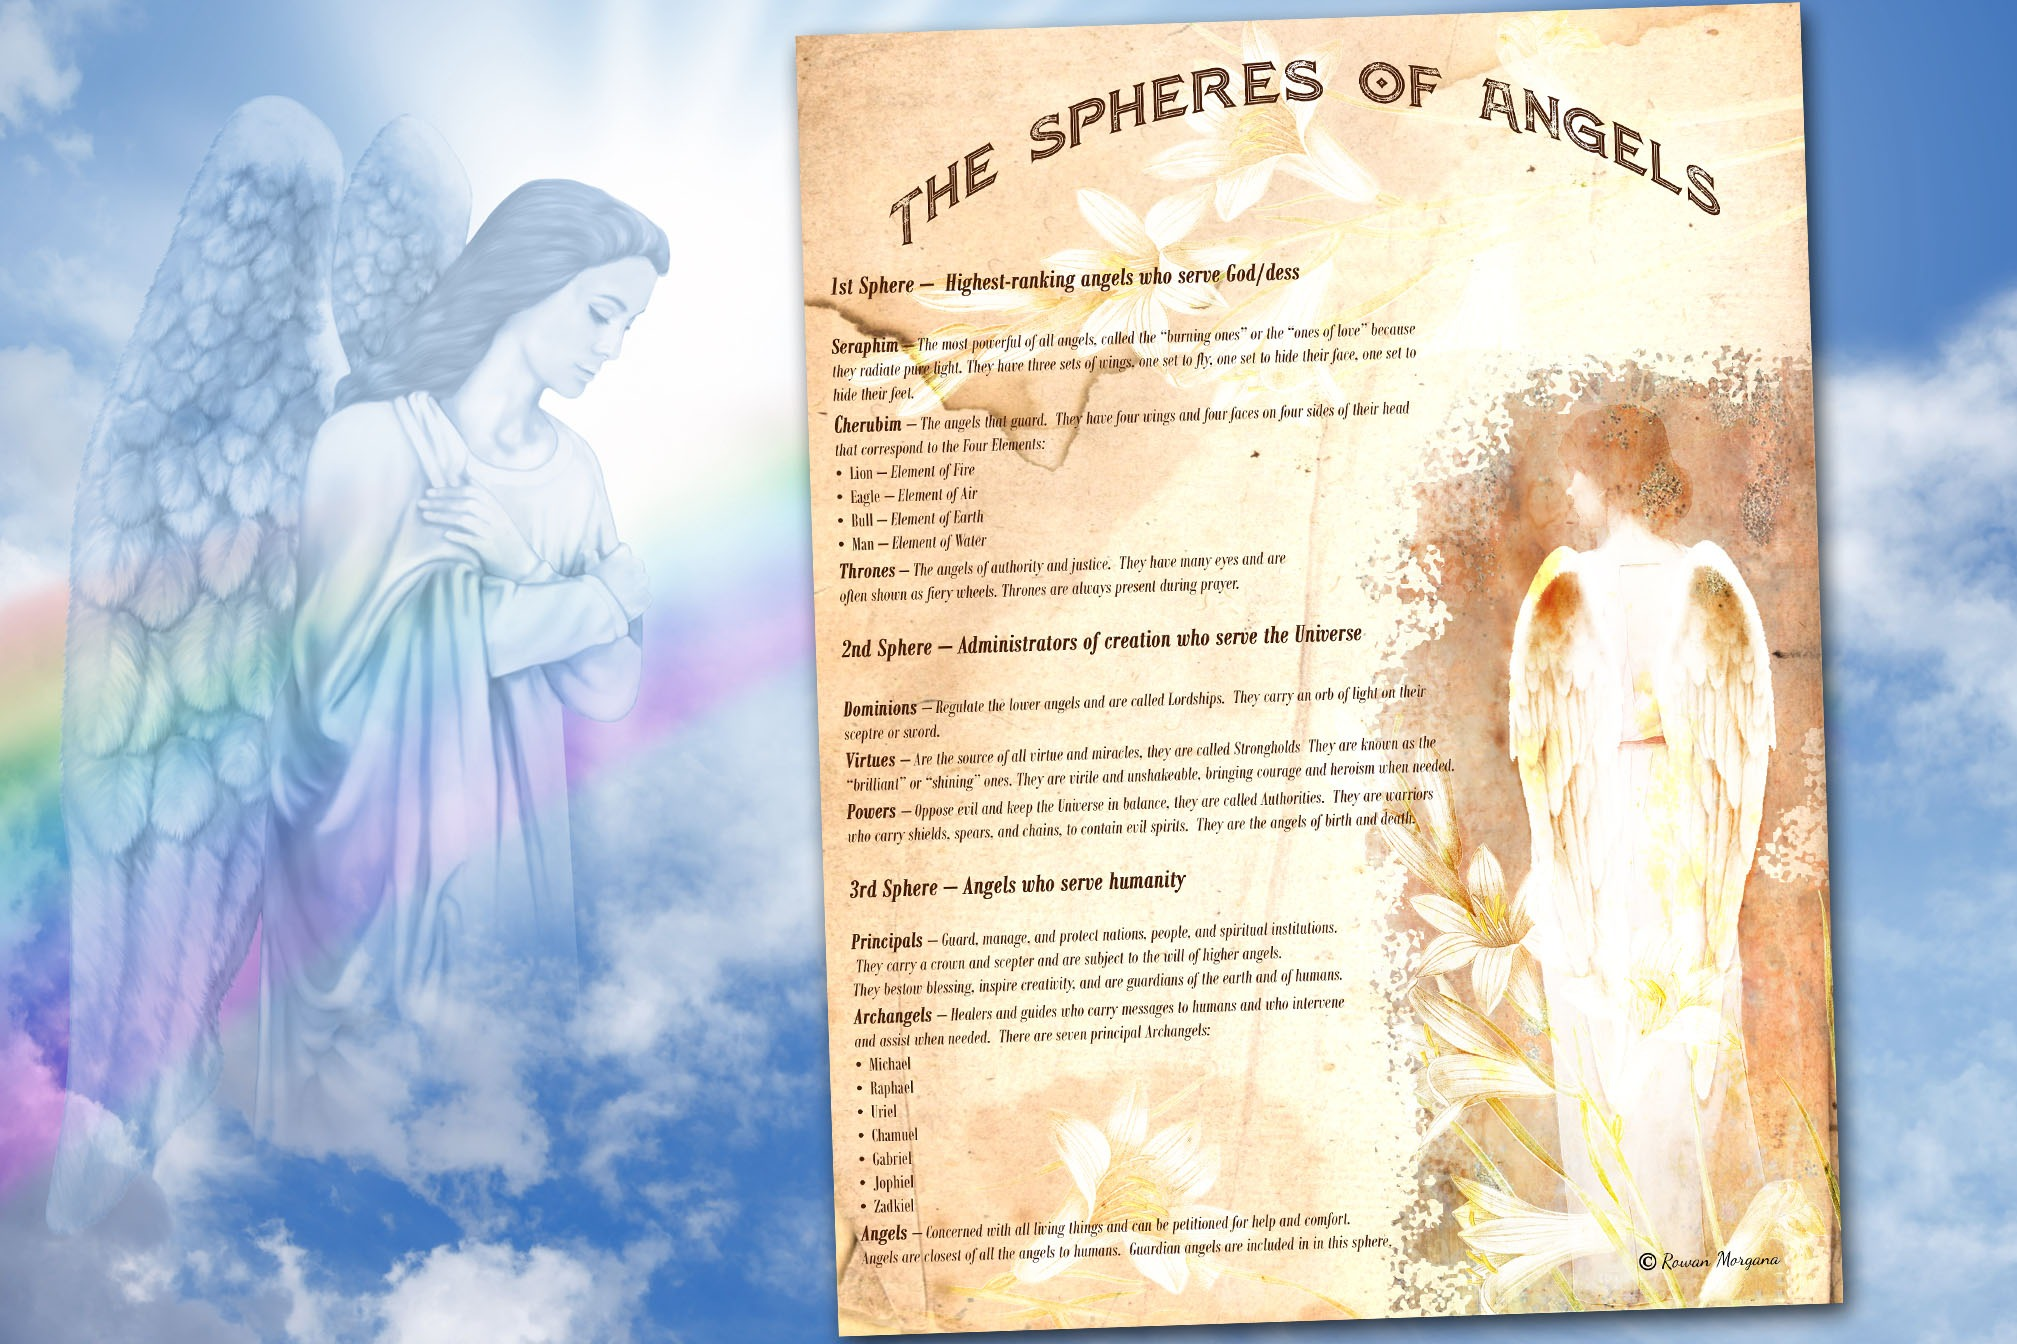 The SPHERES of ANGELS